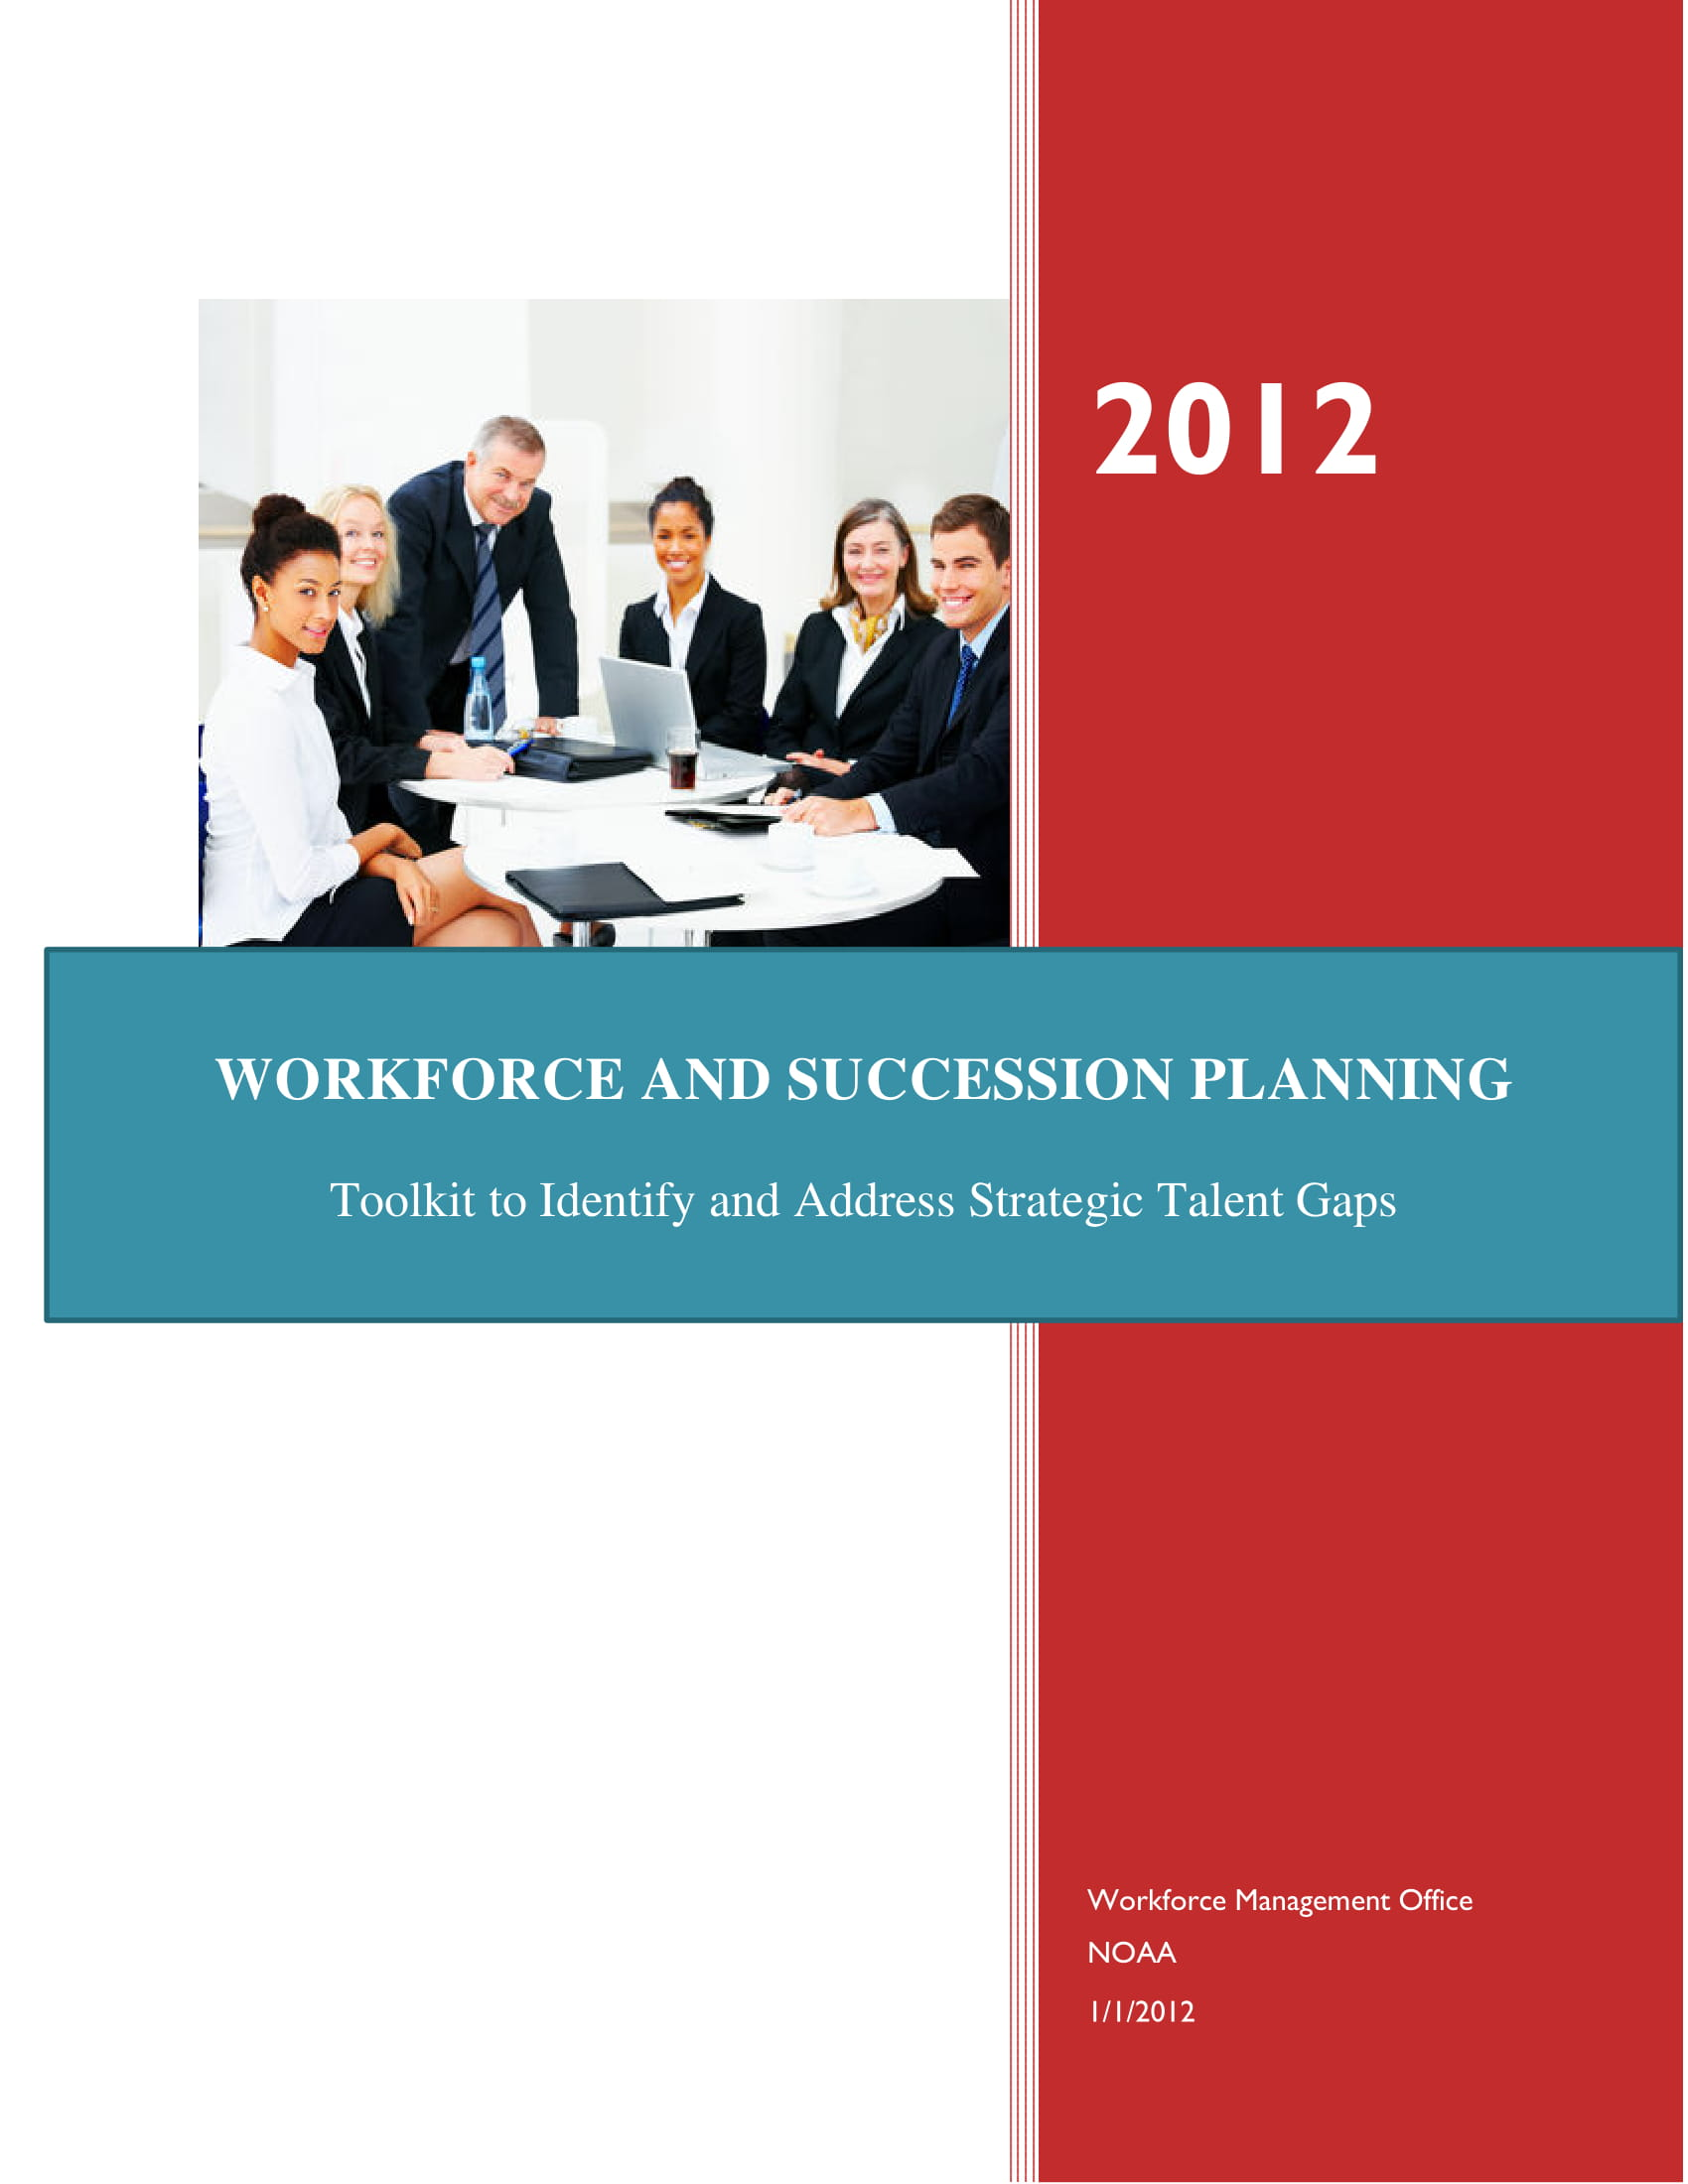 workforce and succession planning template example